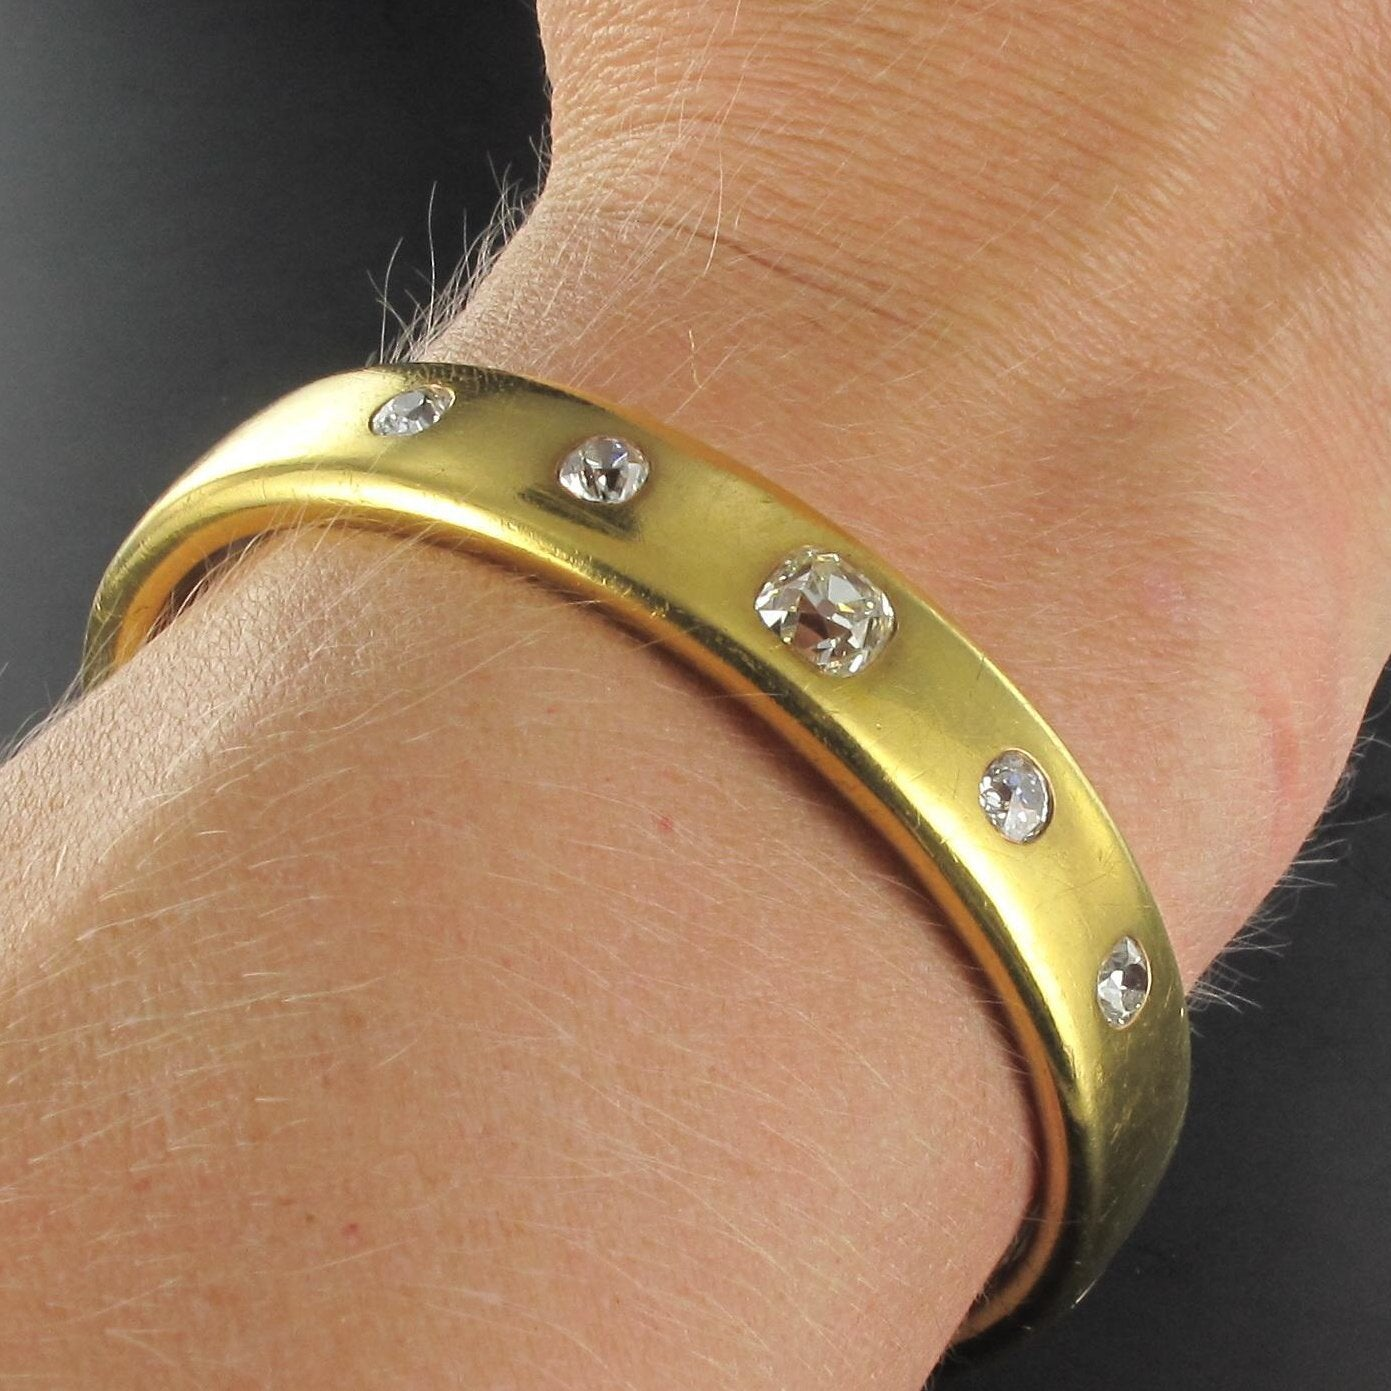 bangle bracelet bracelets new type bangles gold platinum diamond